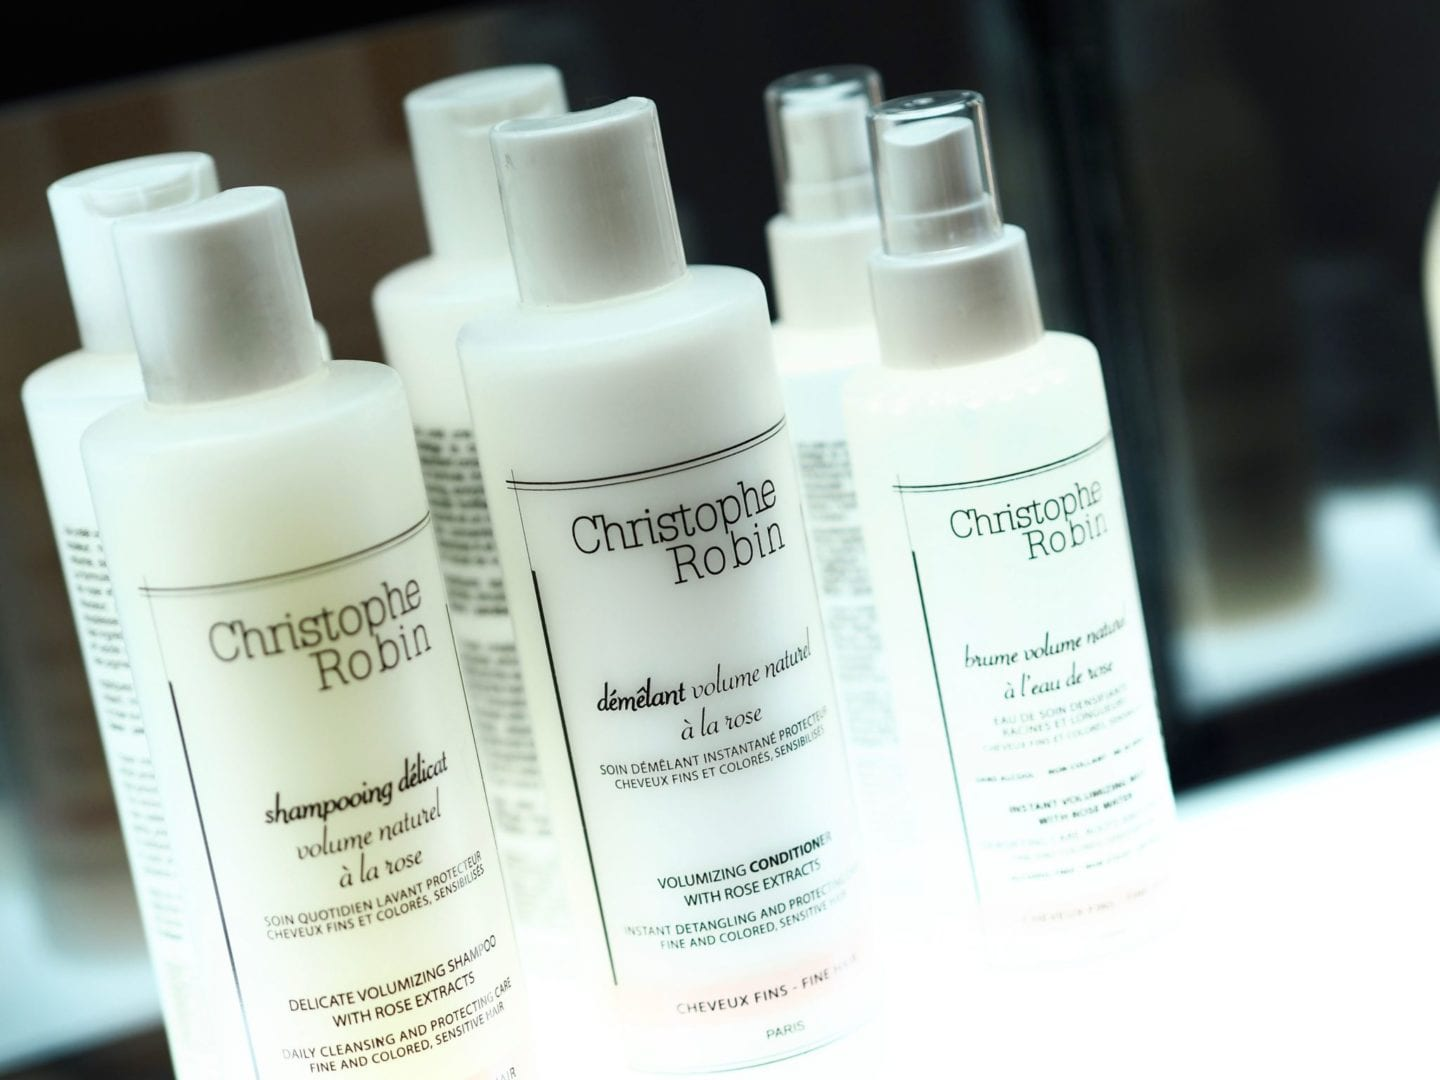 christophe-robin-hair-care-products-luxury